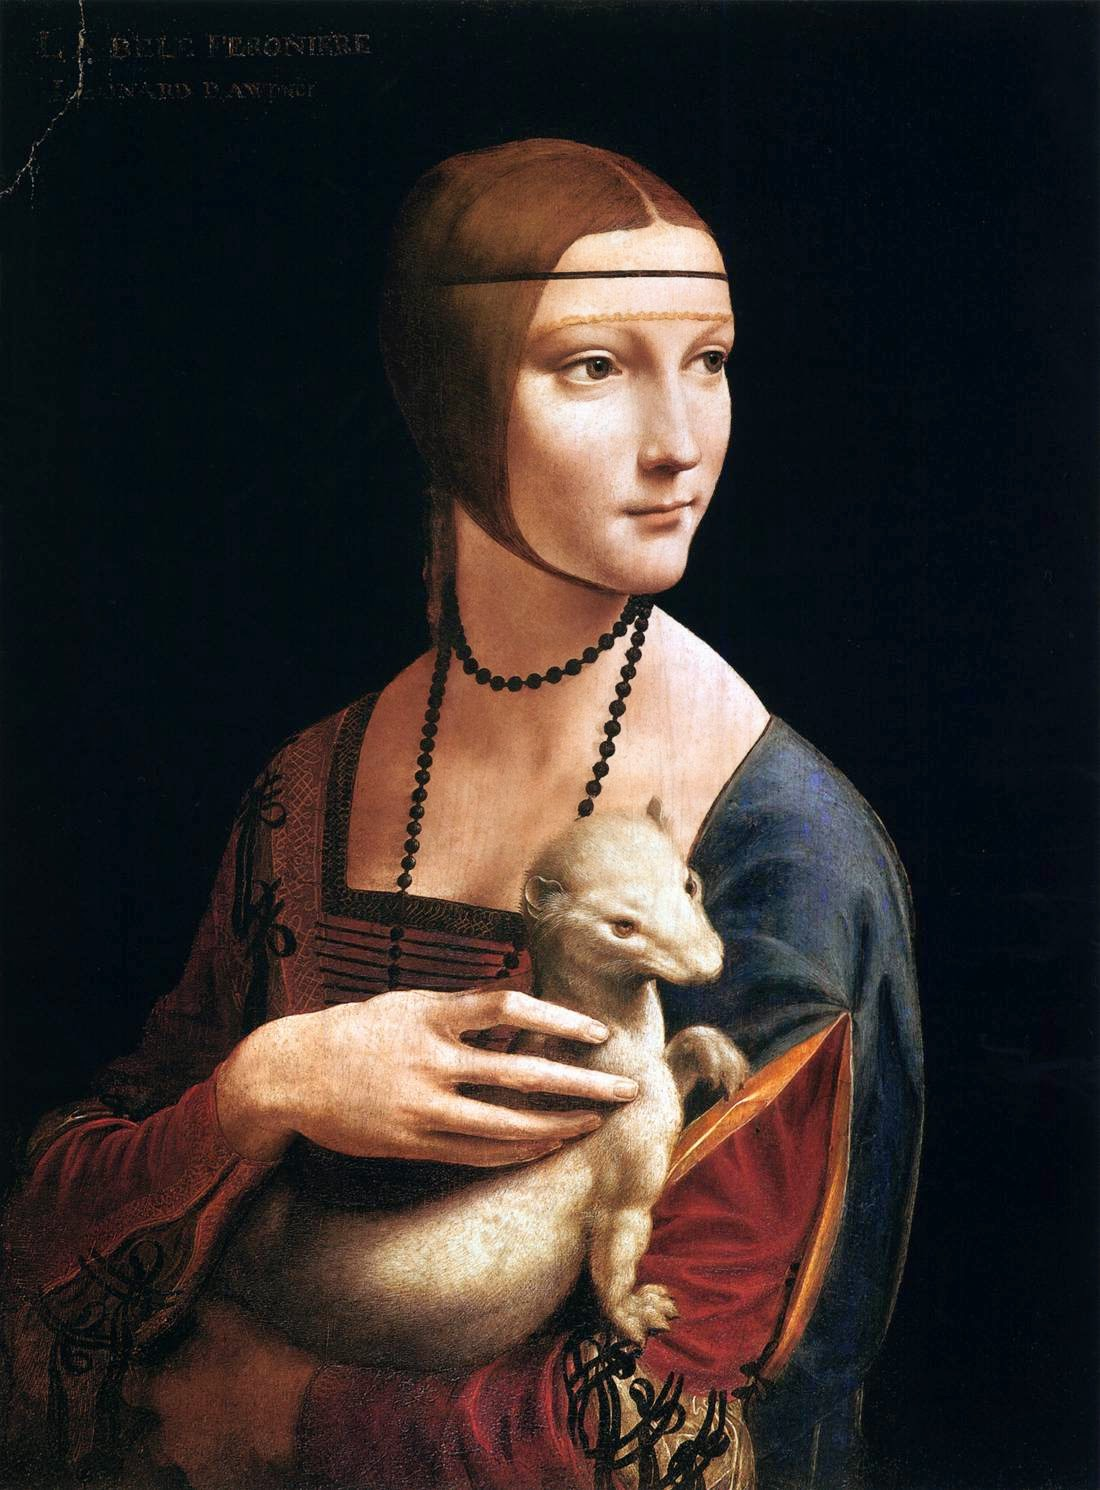 The Lady with the Ermine (Cecilia Gallerani) by  Leonardo da Vinci c1490